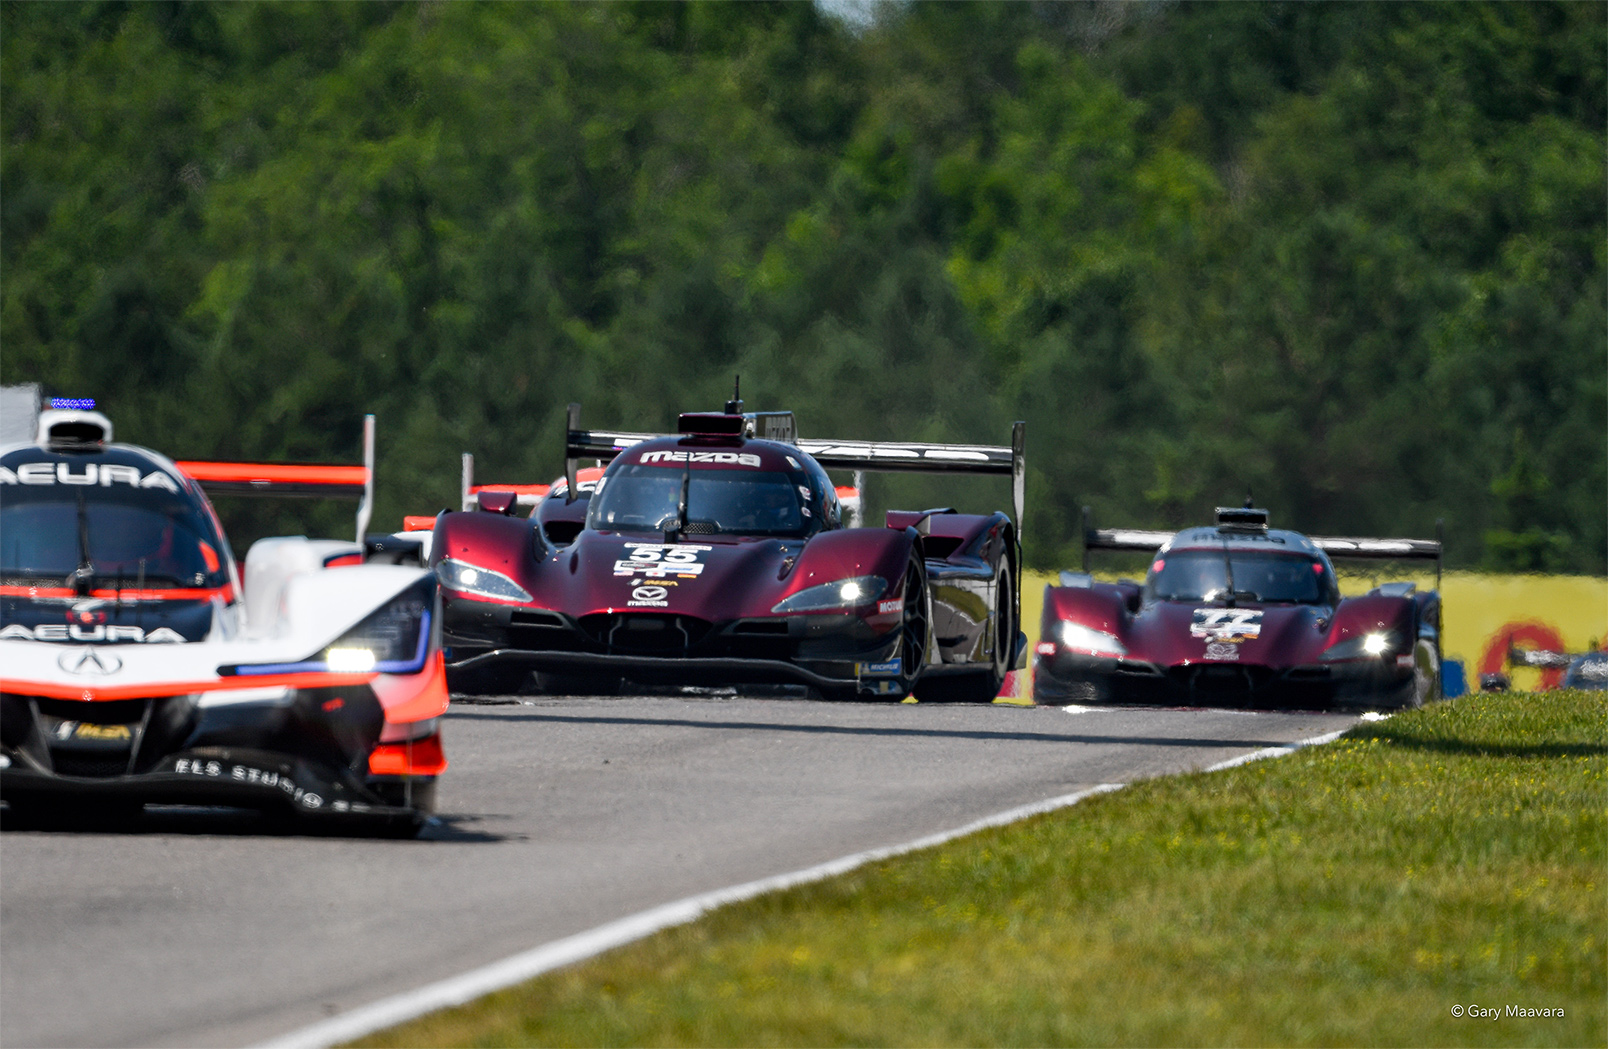 Back-to-Back 1-2 Finishes for Mazda with Win at Mobil 1 SportsCar Grand Prix